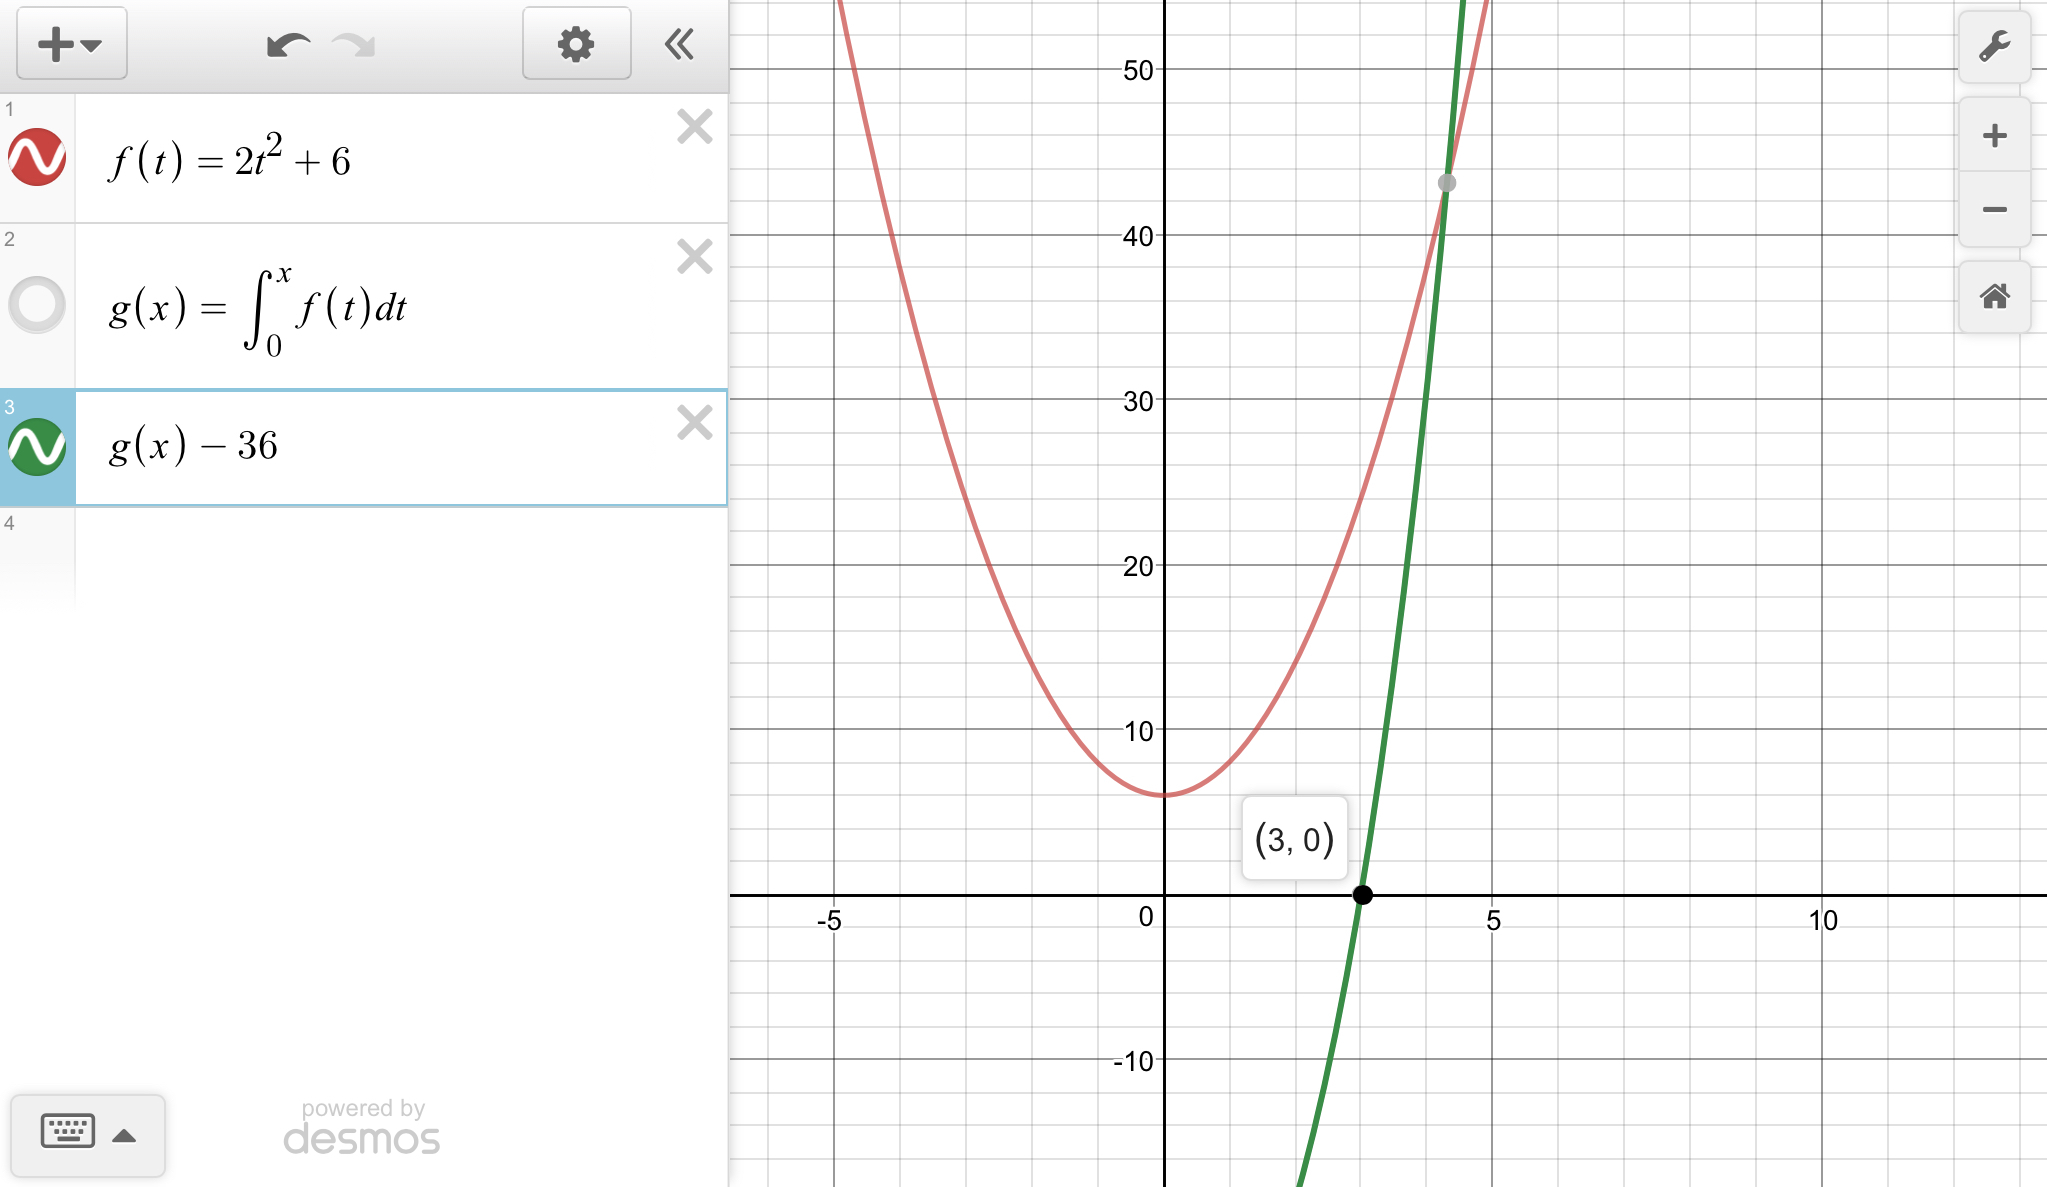 The area of the region under the curve given by the function